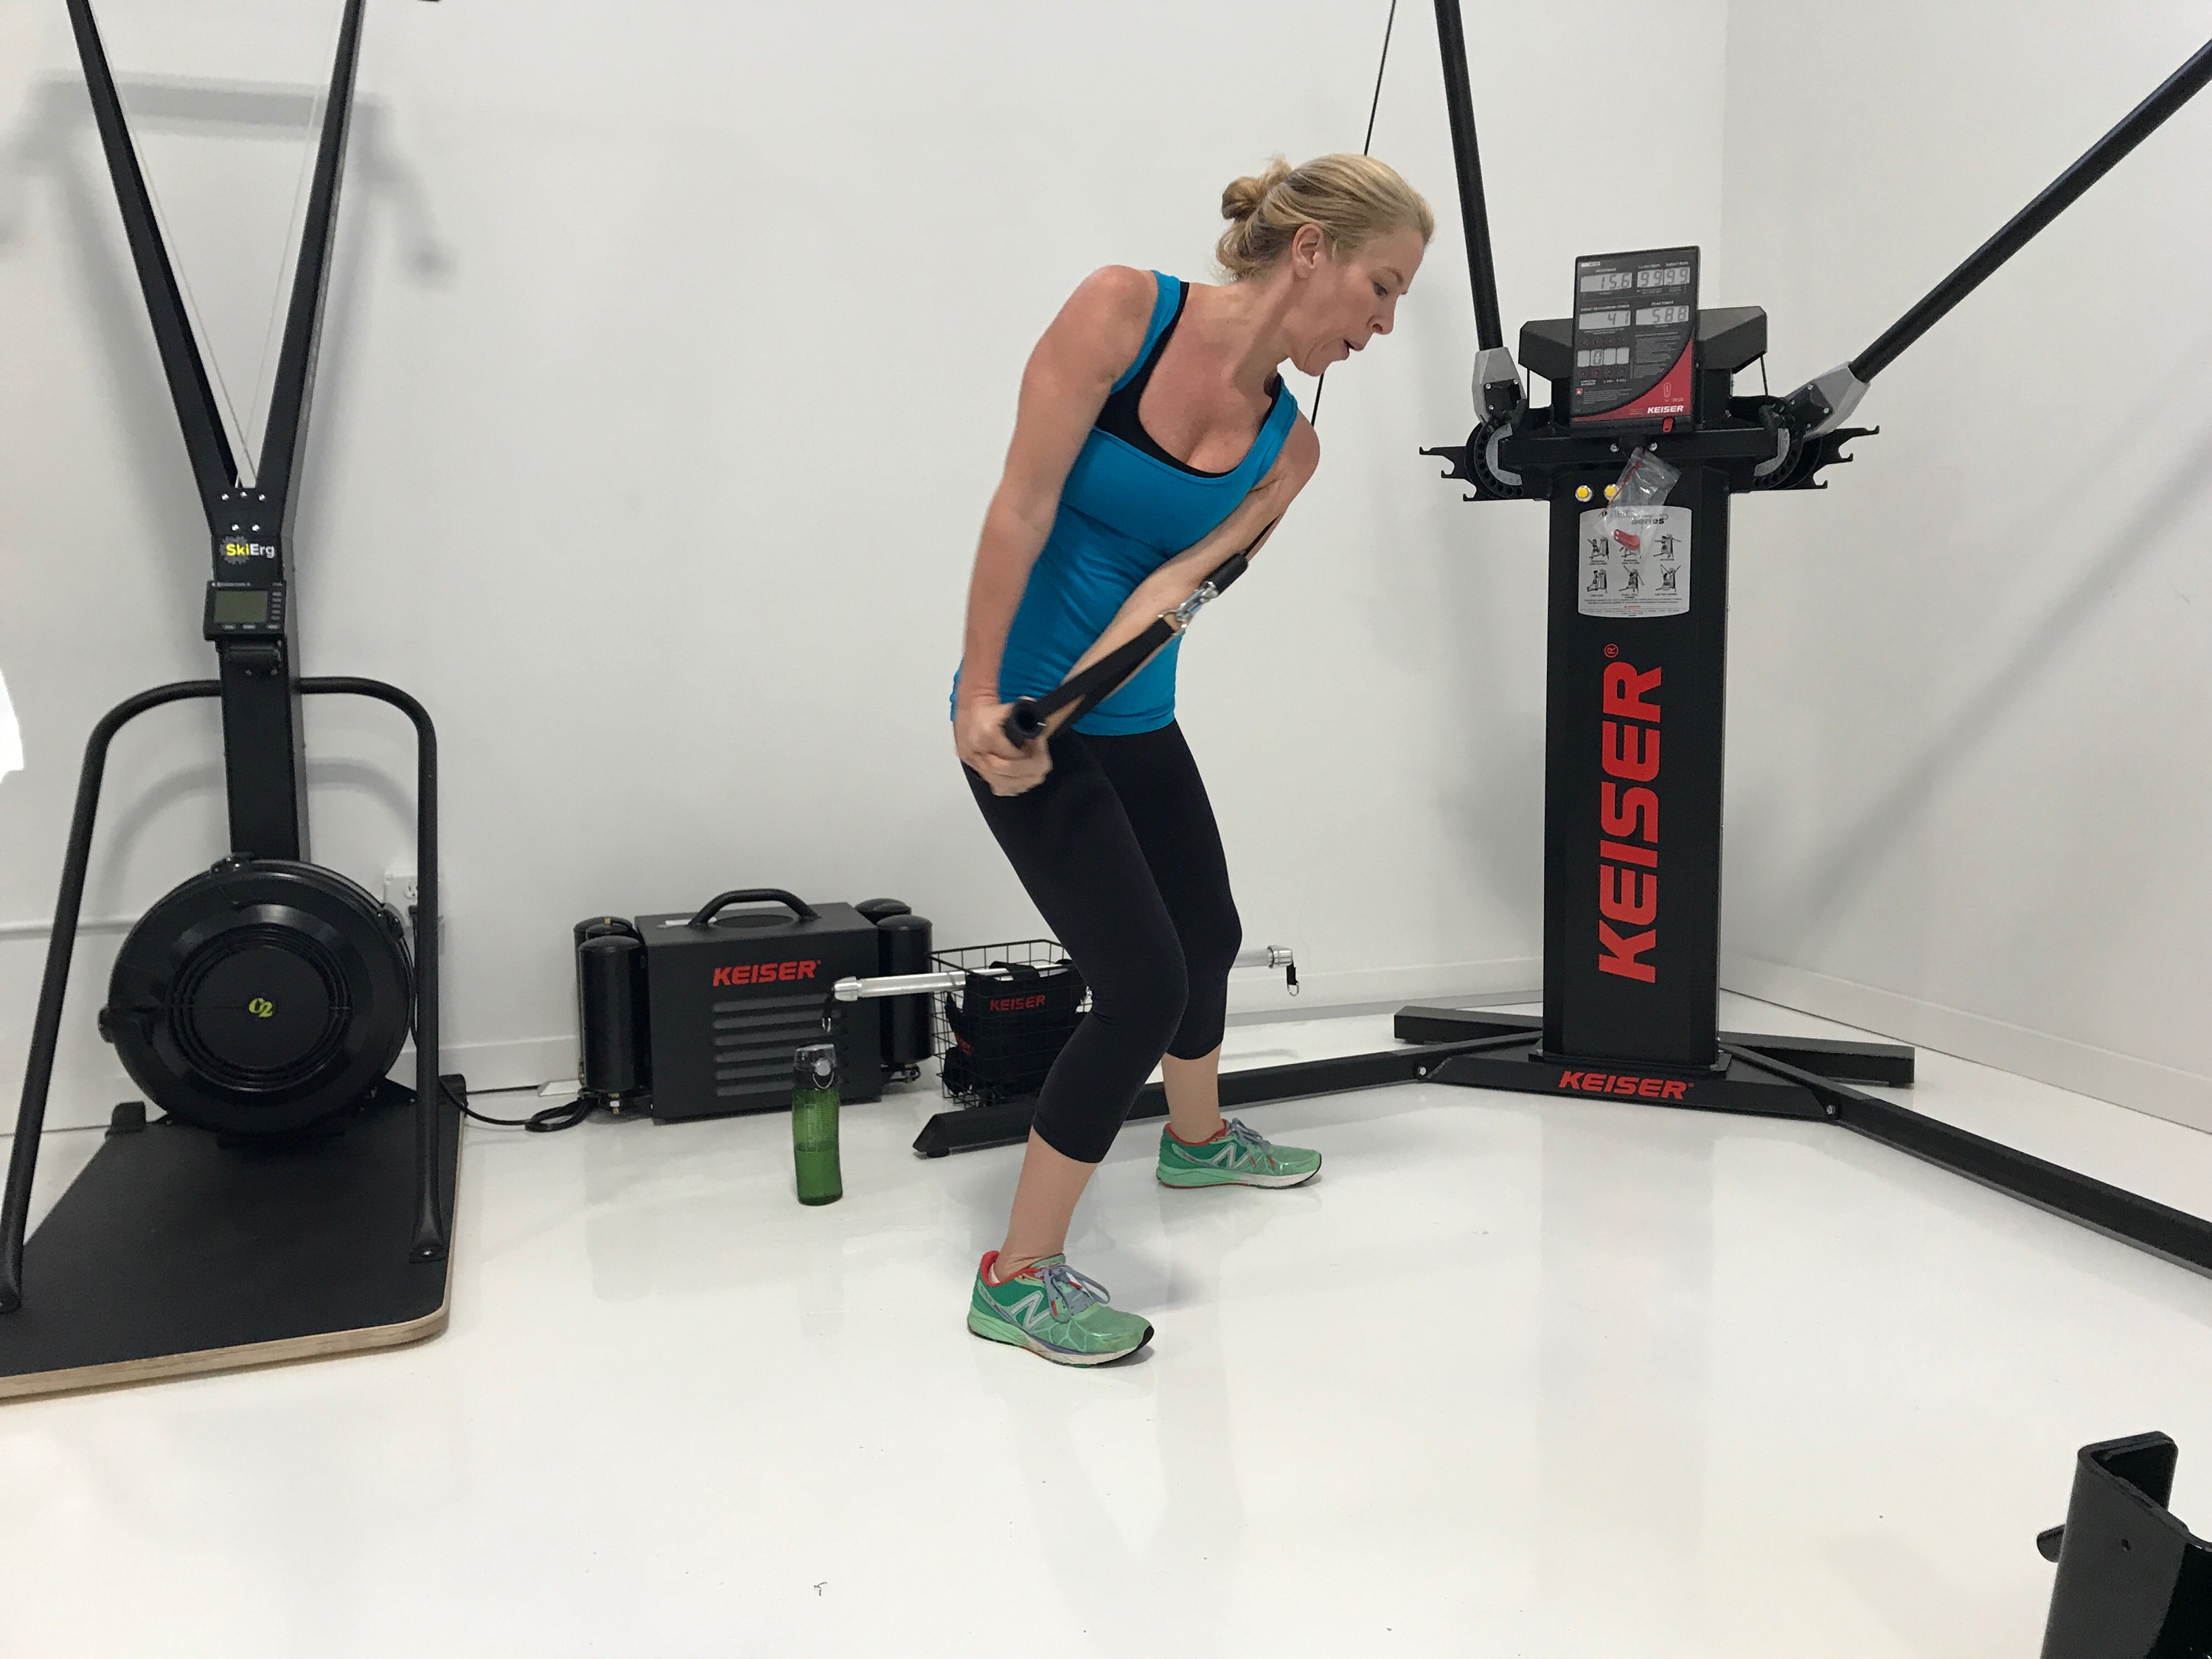 keiser training equipment used by driven